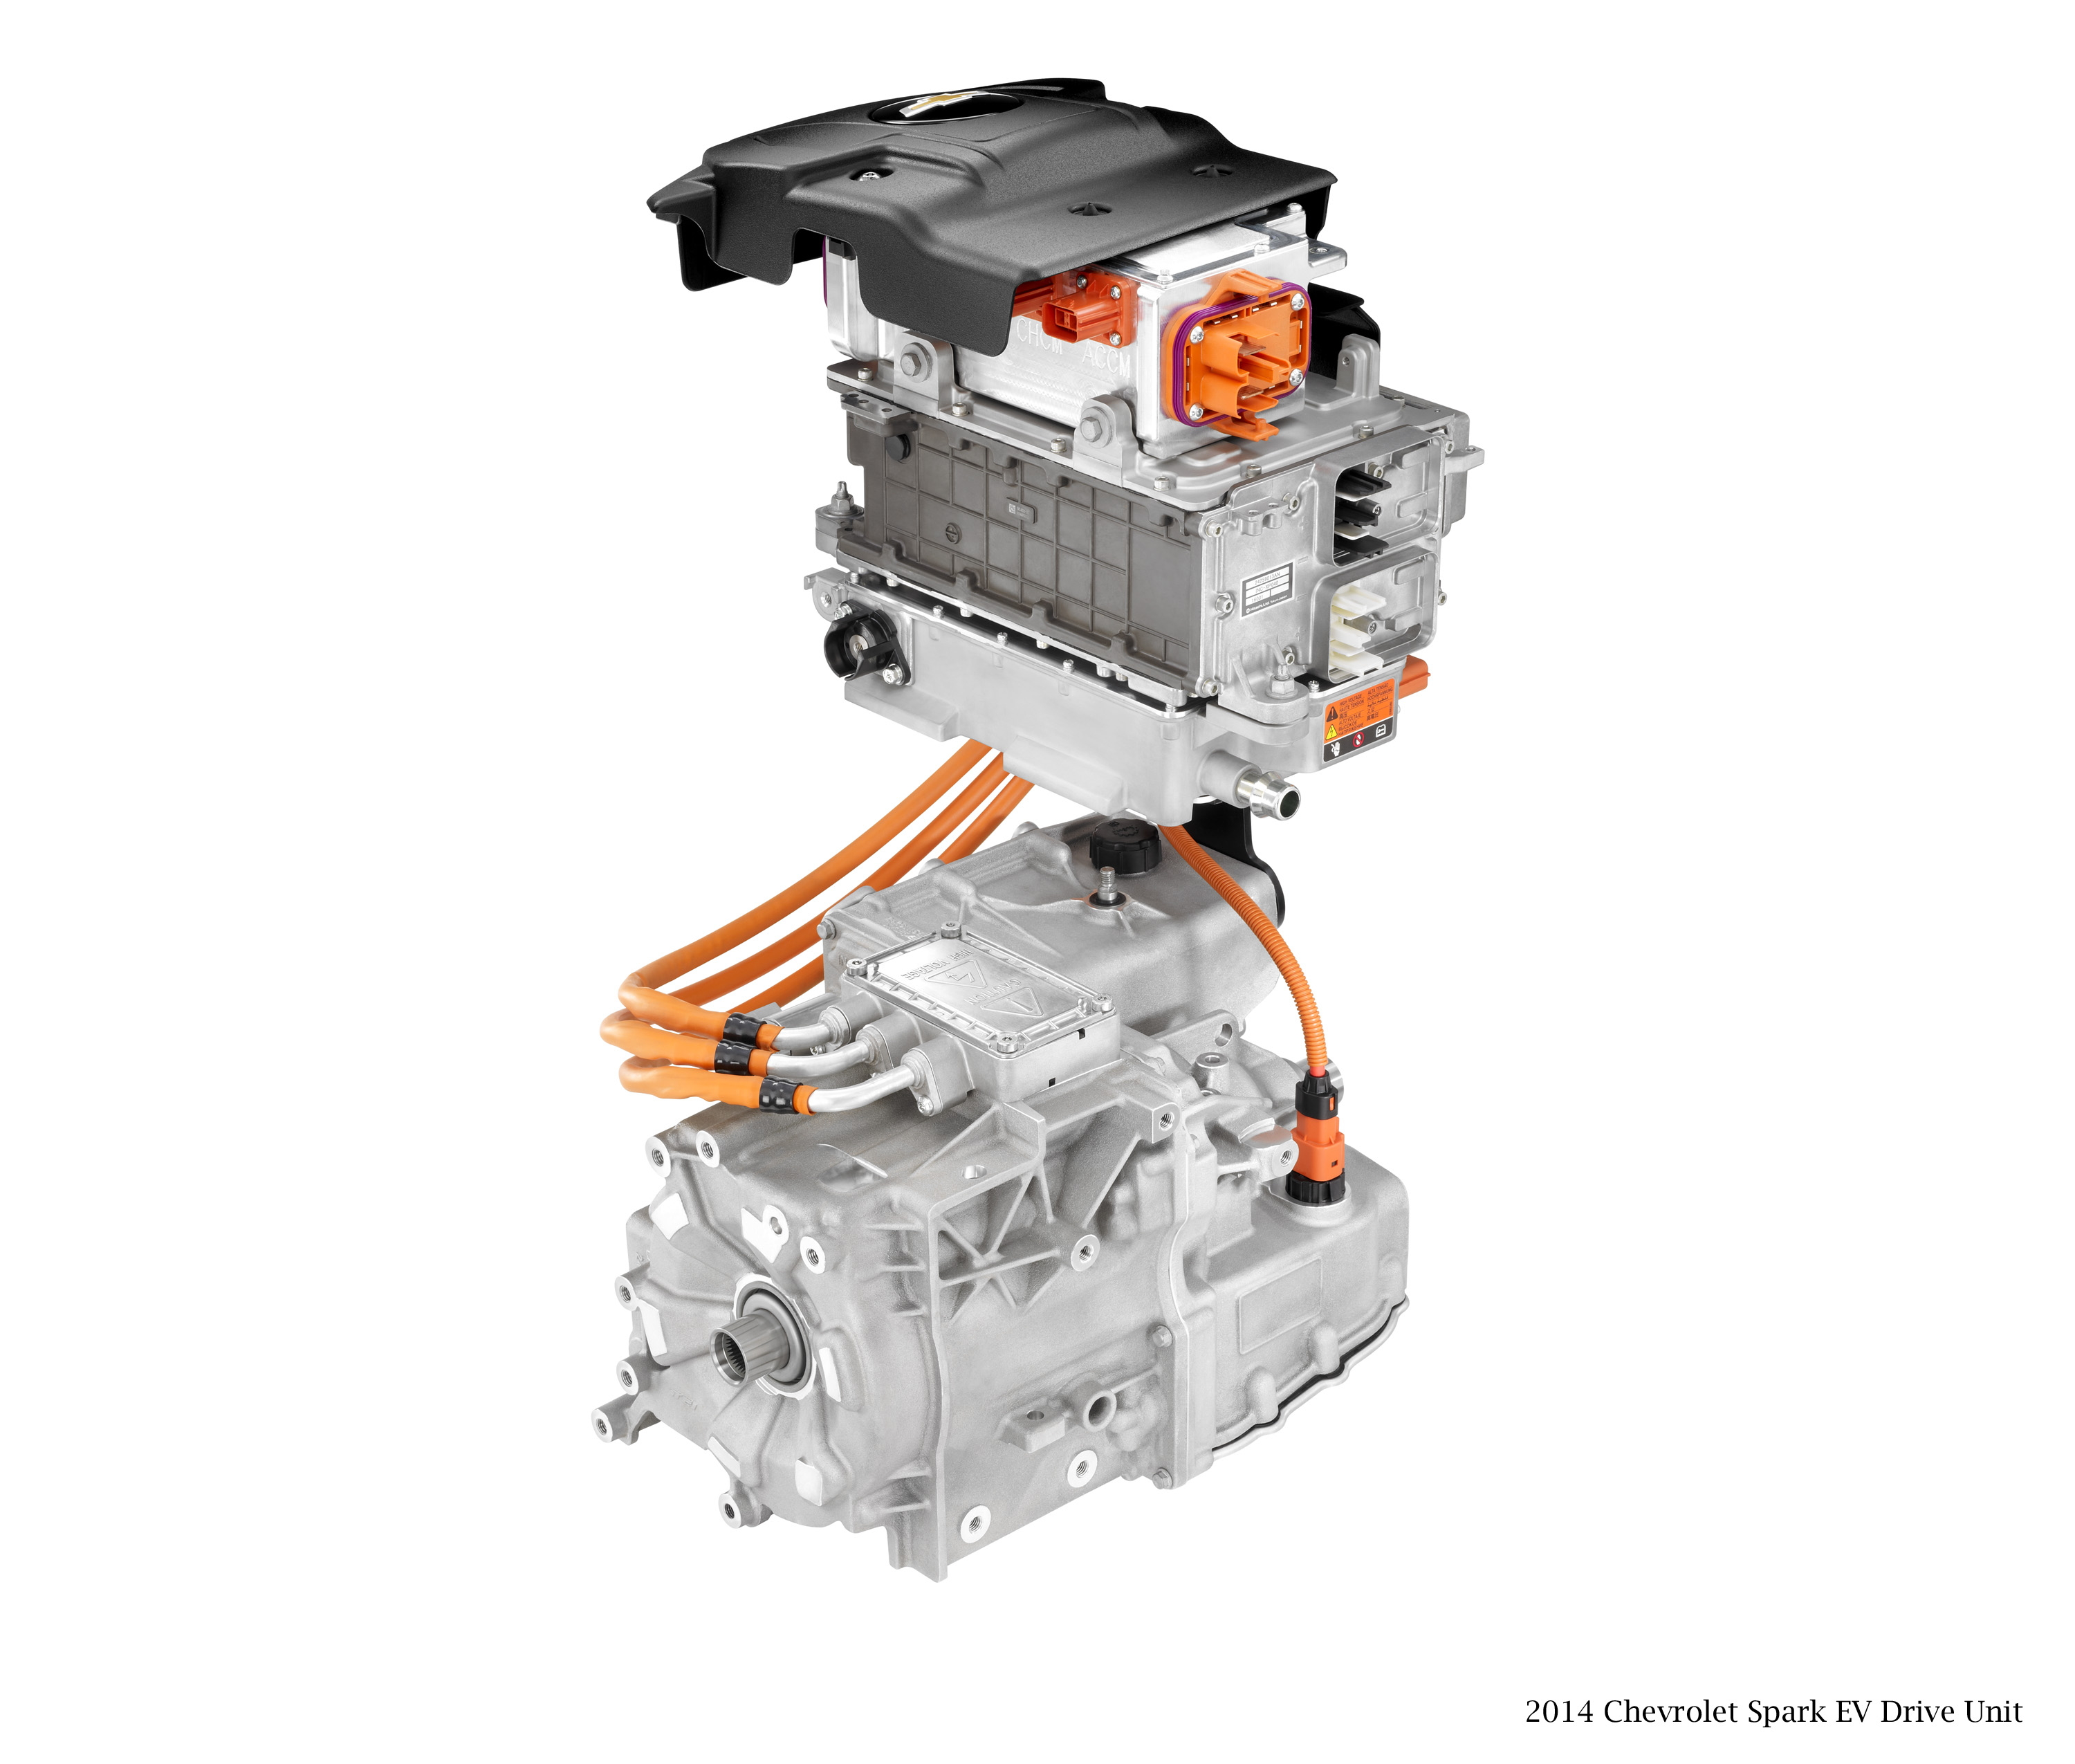 chevrolet pressroom united states images Chevy Spark Ev Wiring Diagrams Download Chevy Spark Ev Wiring Diagrams Download #8 2017 Chevy Spark EV